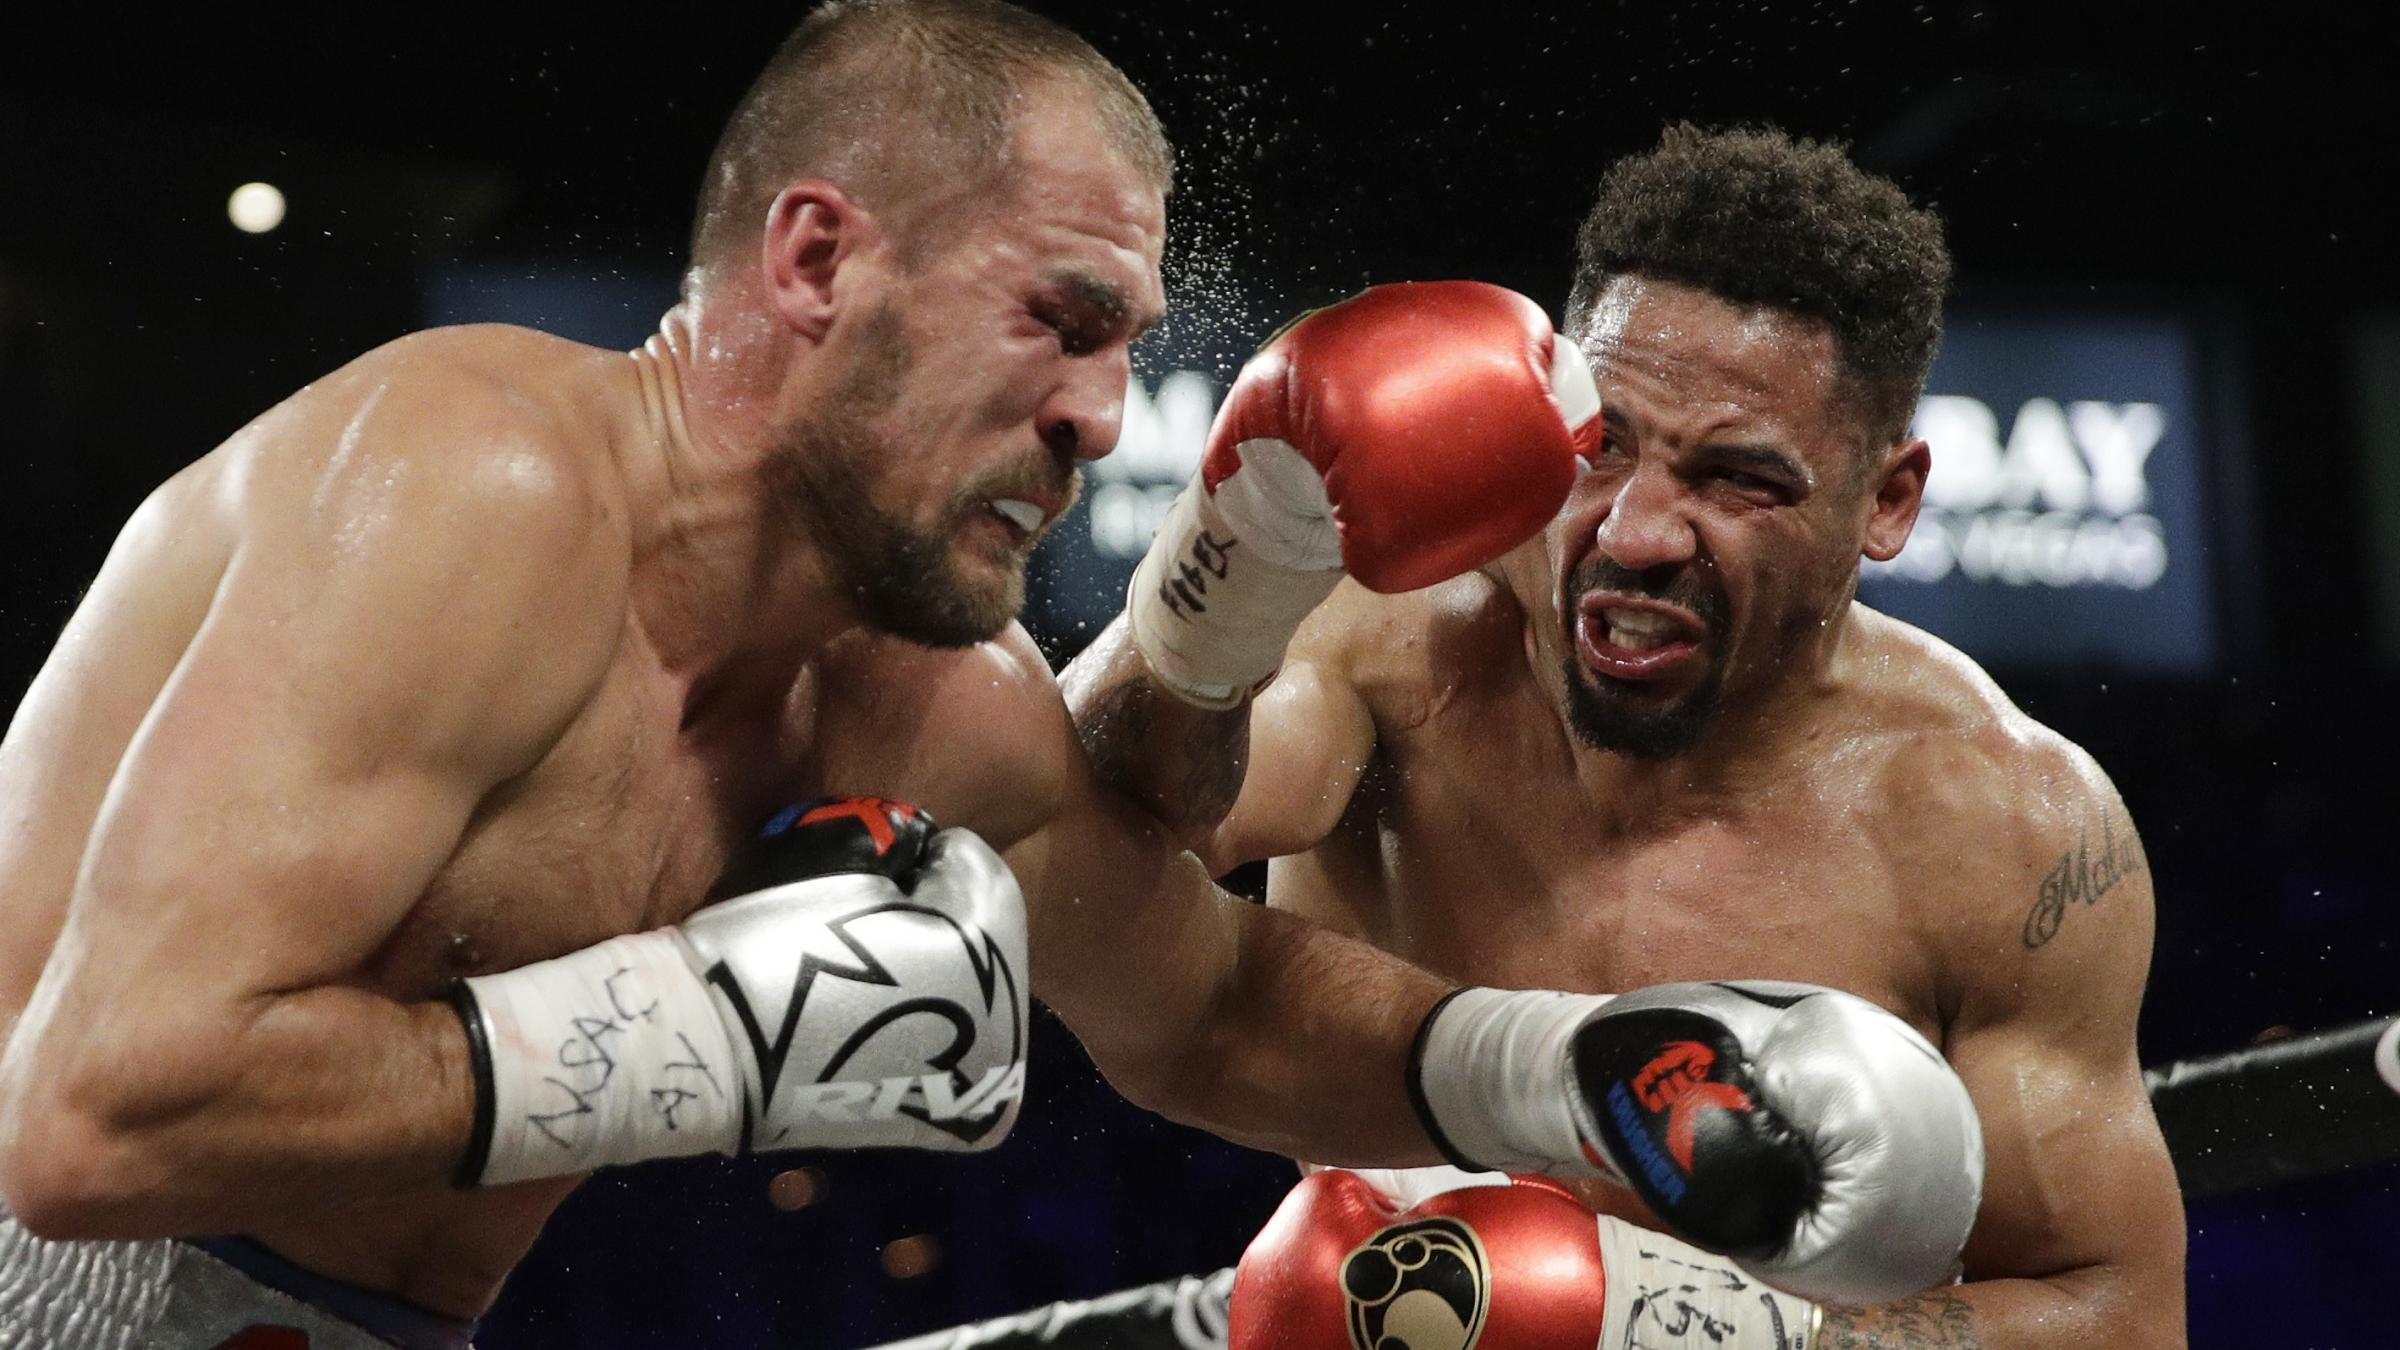 Andre Ward TKO's Sergey Kovalev in light heavyweight boxing world championship